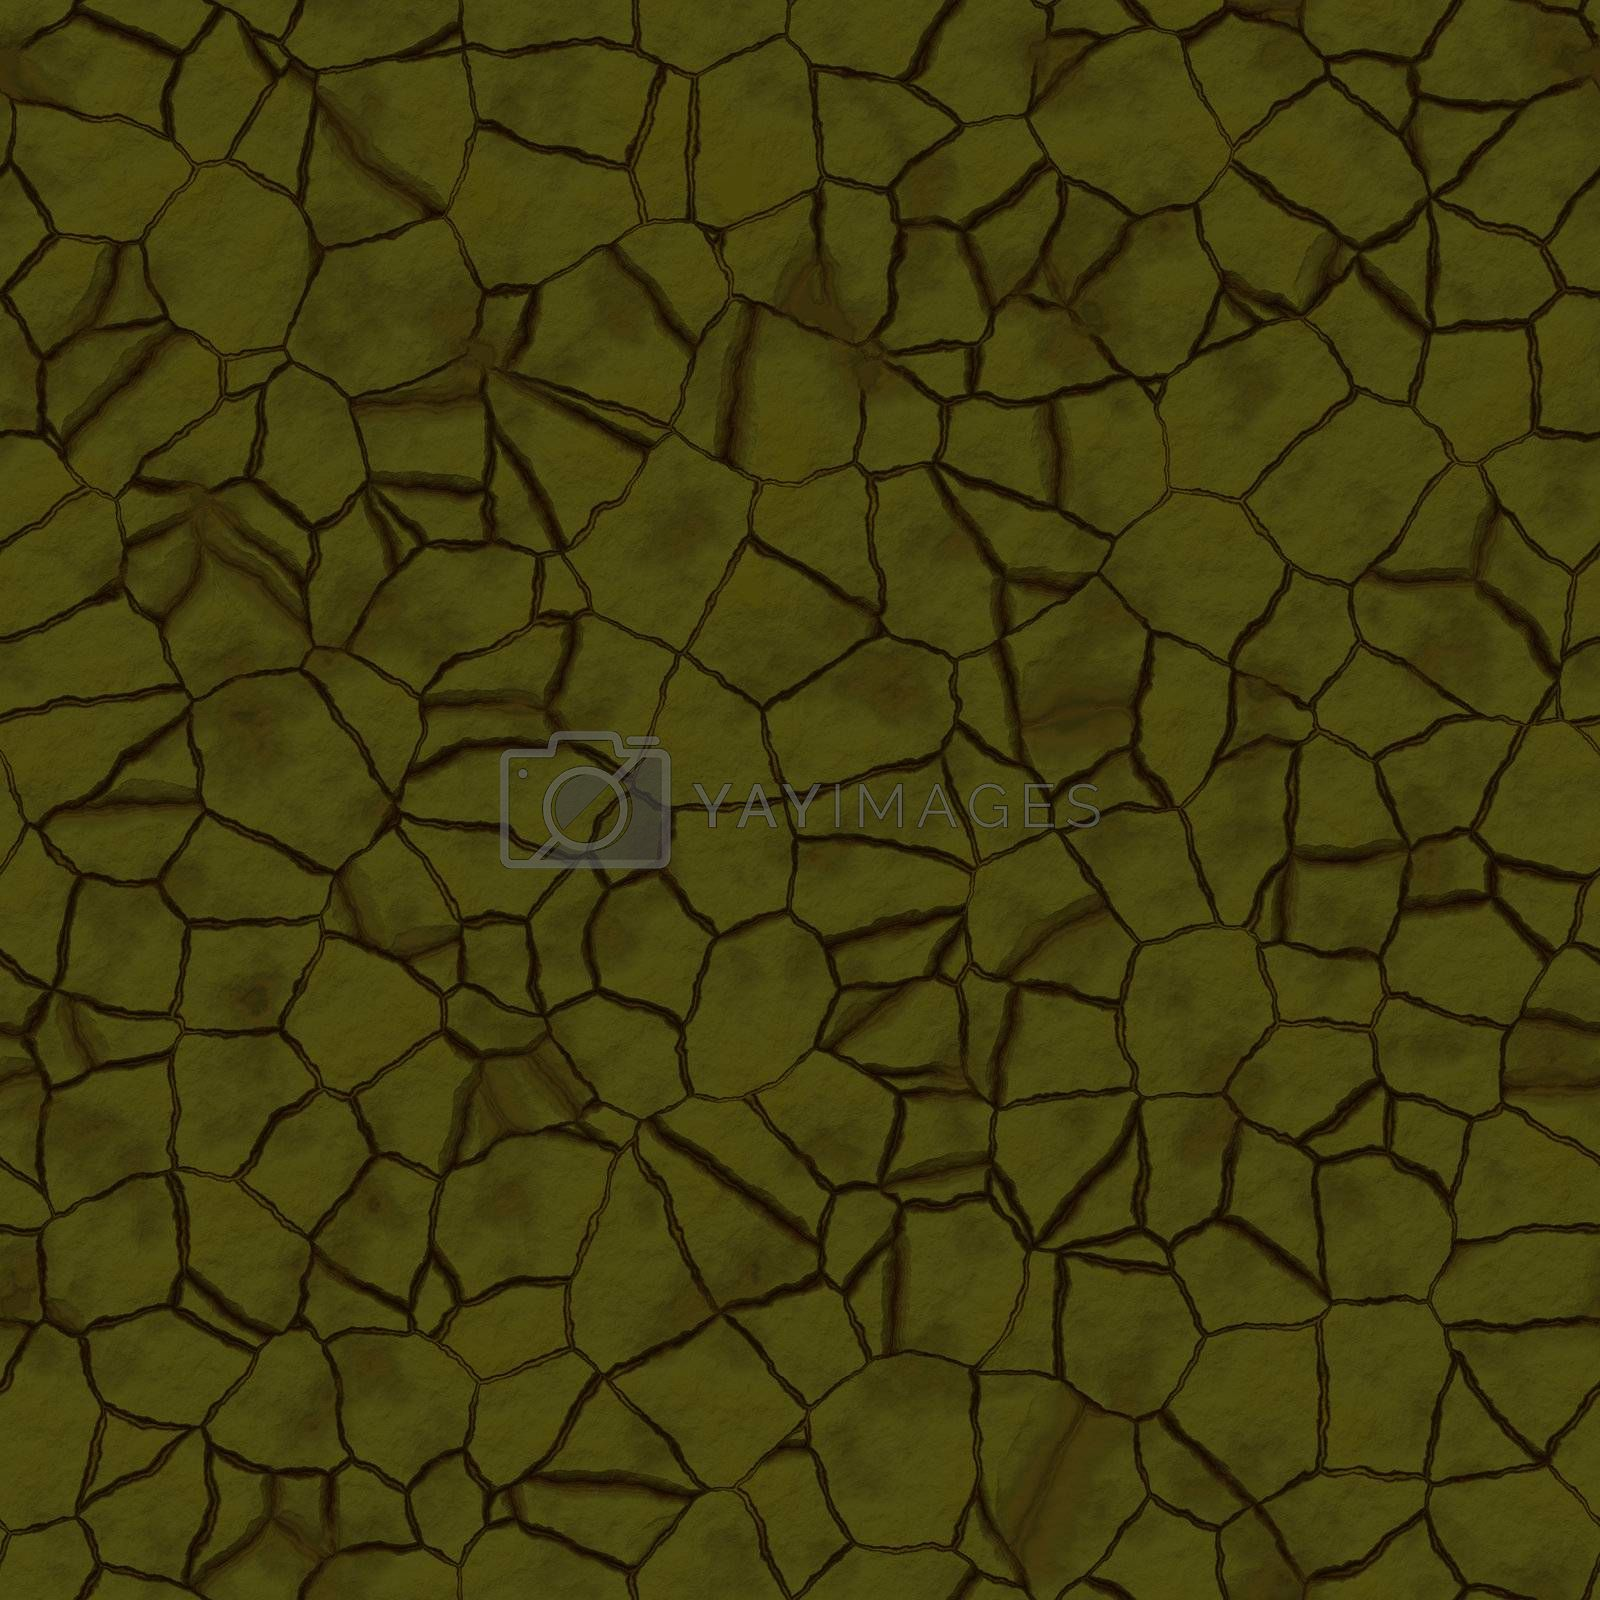 Cracked dry earth ground drought surface seamless texture